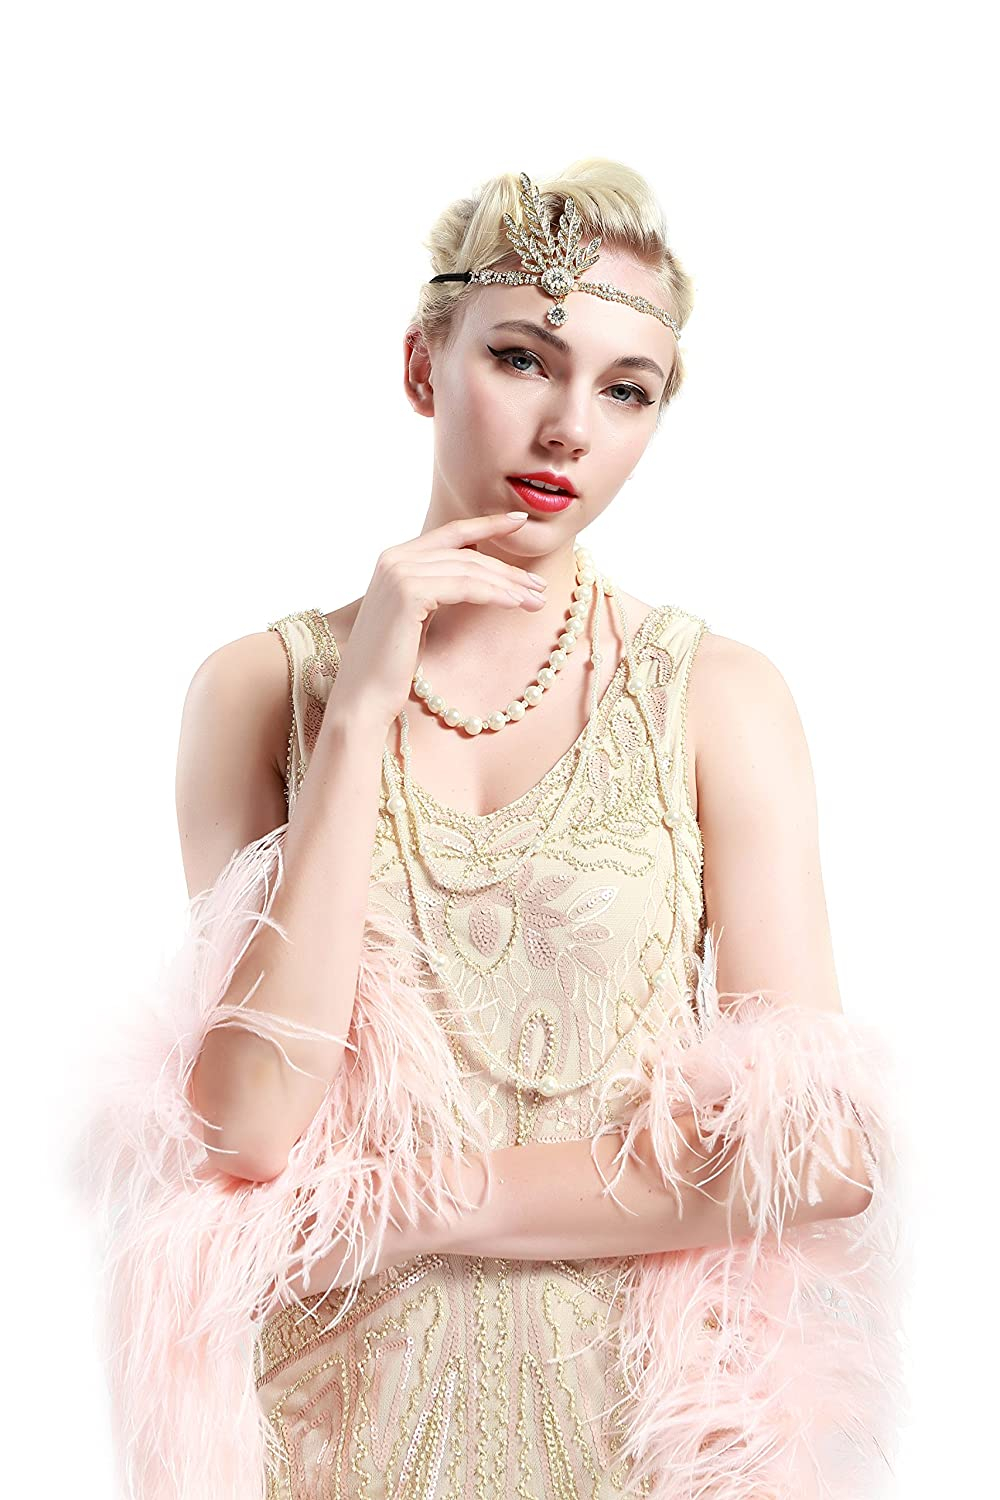 1920s Accessories | Great Gatsby Accessories Guide BABEYOND 1920s Headpiece Flapper Headpiece Vintage 1920s Headband Great Gatsby Accessories Women Roaring 20s Accessories with Gift Box £10.99 AT vintagedancer.com